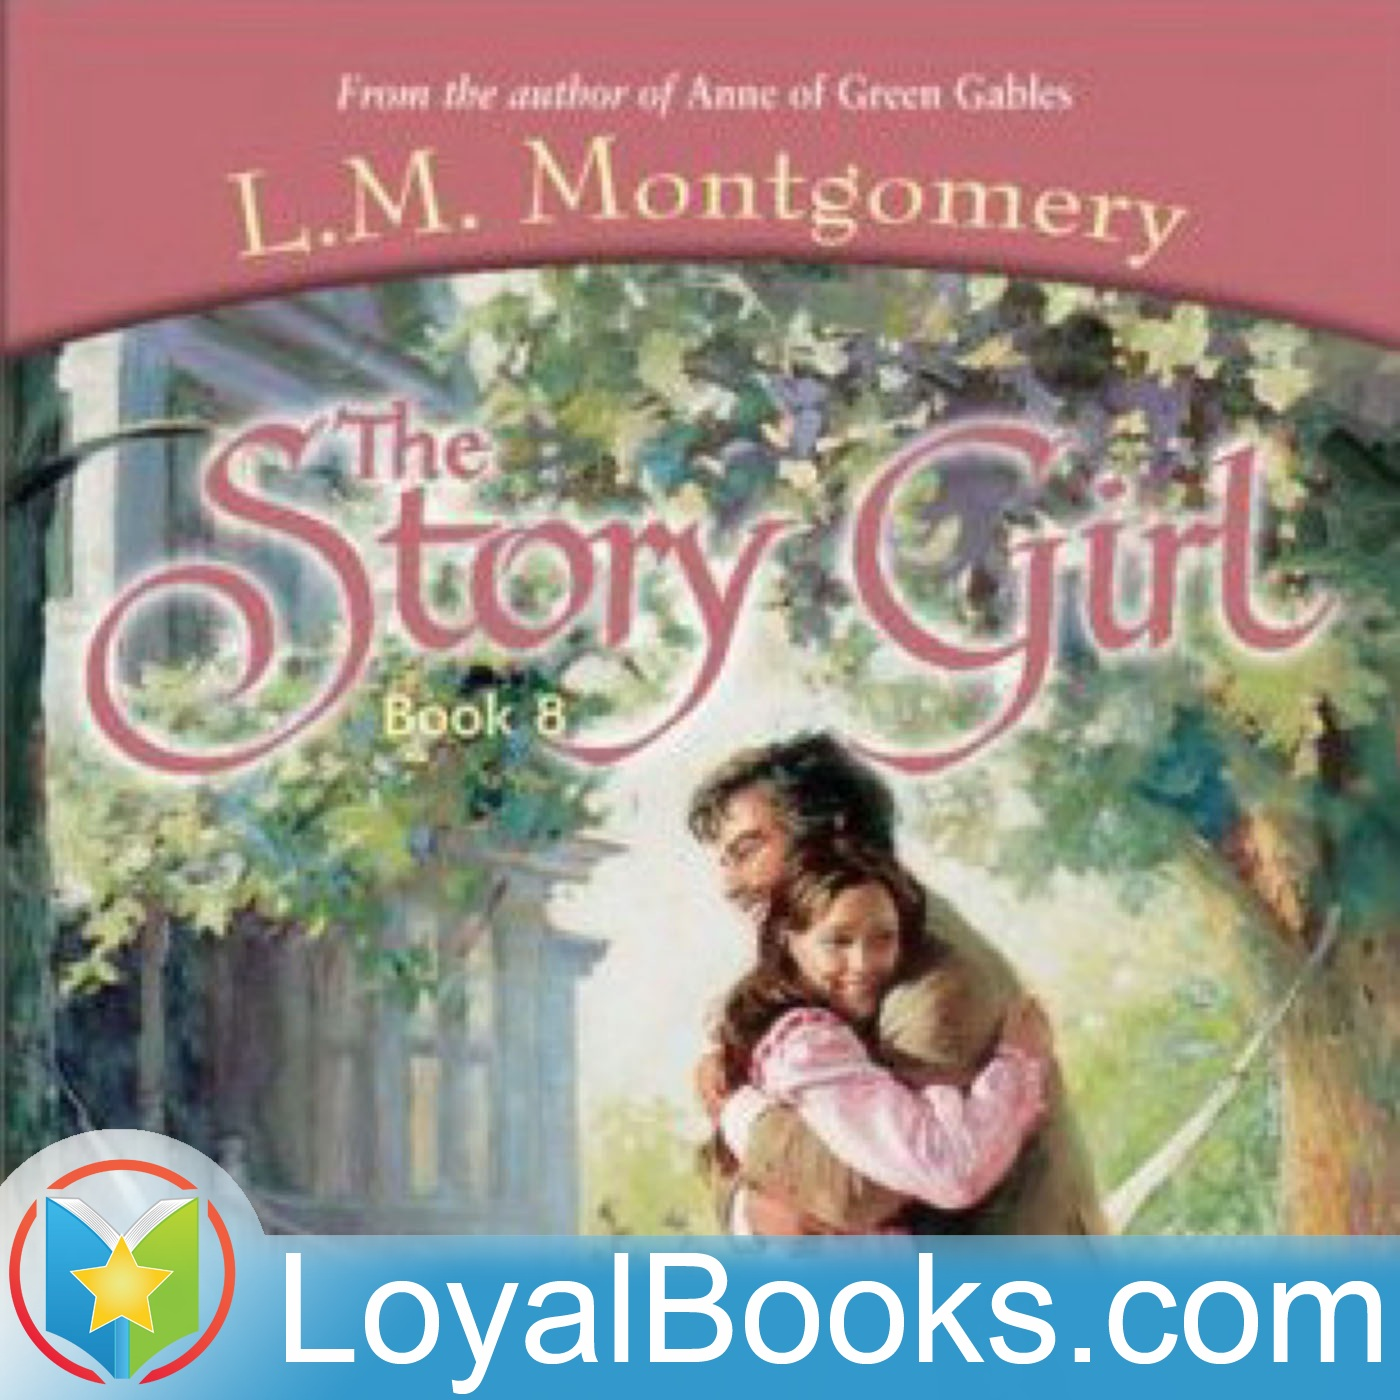 <![CDATA[The Story Girl by Lucy Maud Montgomery]]>